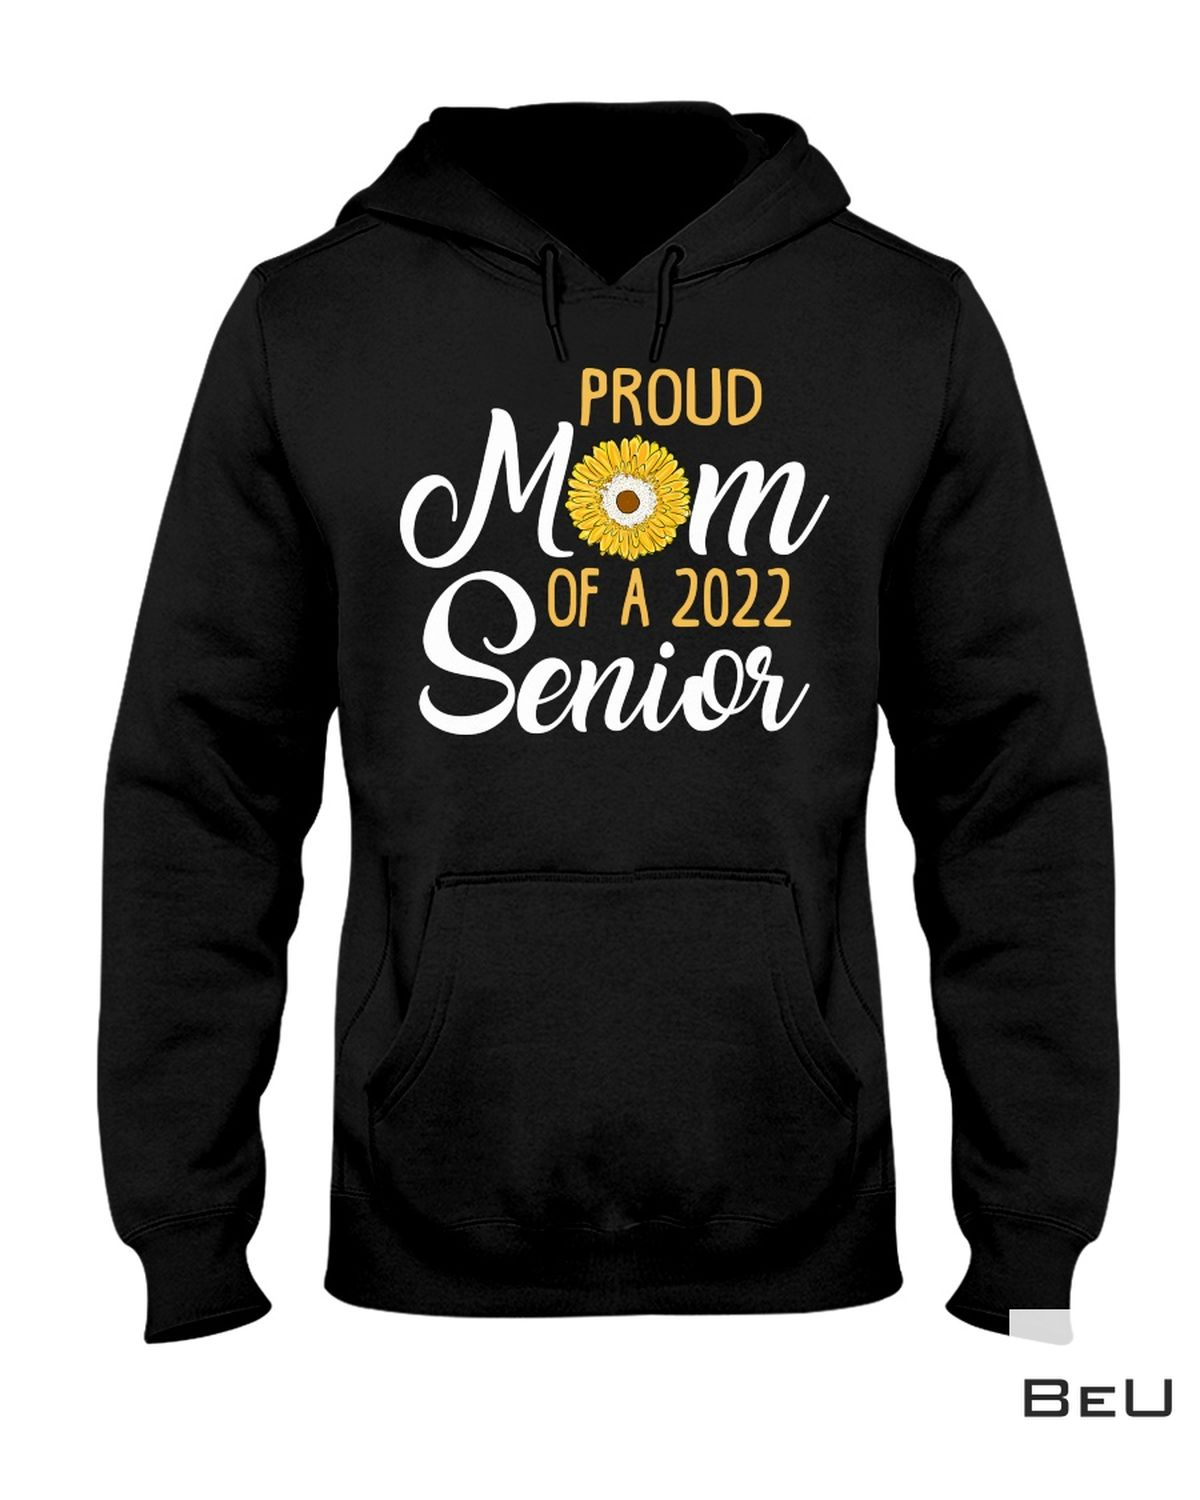 Excellent Proud Mom Of A 2022 Senior Sunflower Shirt, hoodie